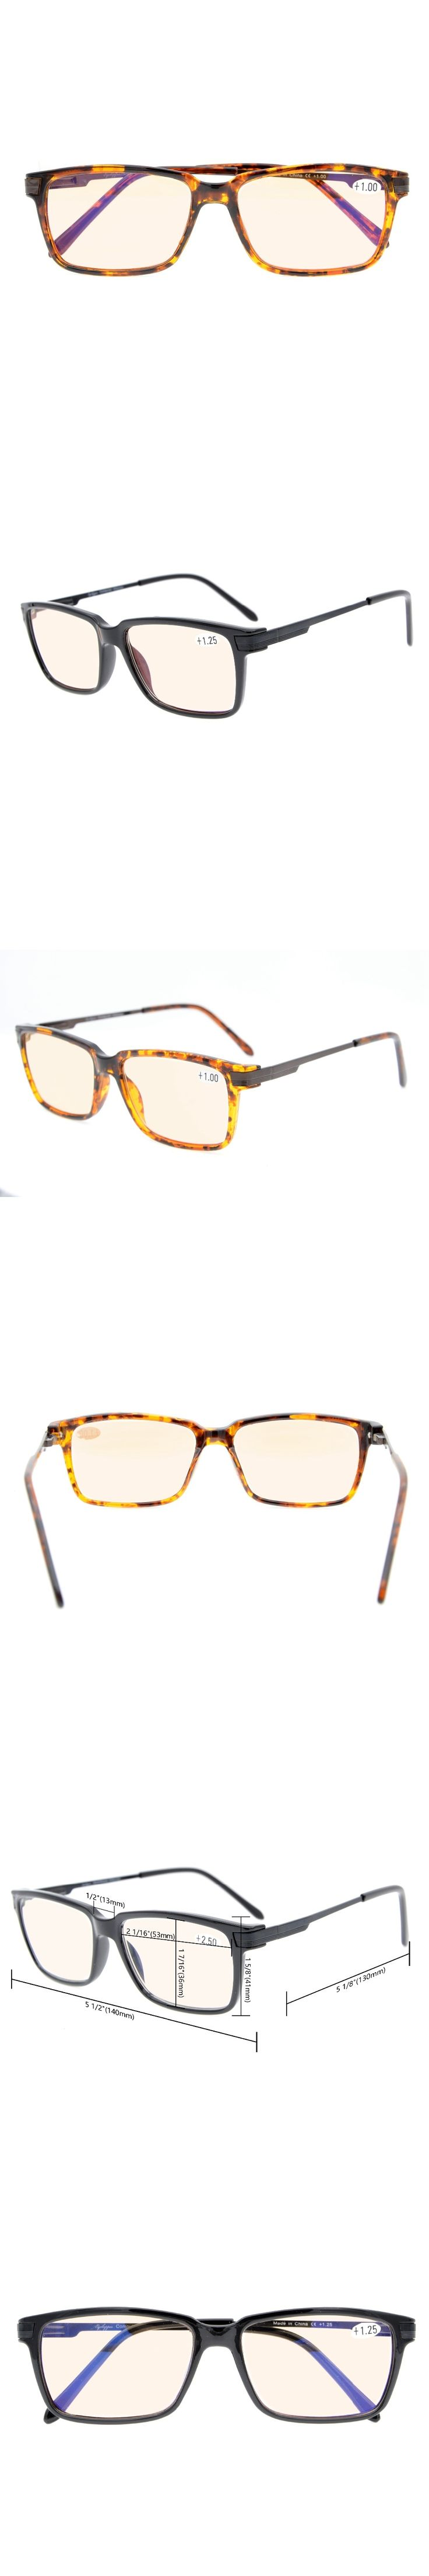 CGTR011 Eyekepper Amber Tinted Lenses Computer Readers Quality TR90 Frame Classic Spring Hinges Computer Reading Glasses